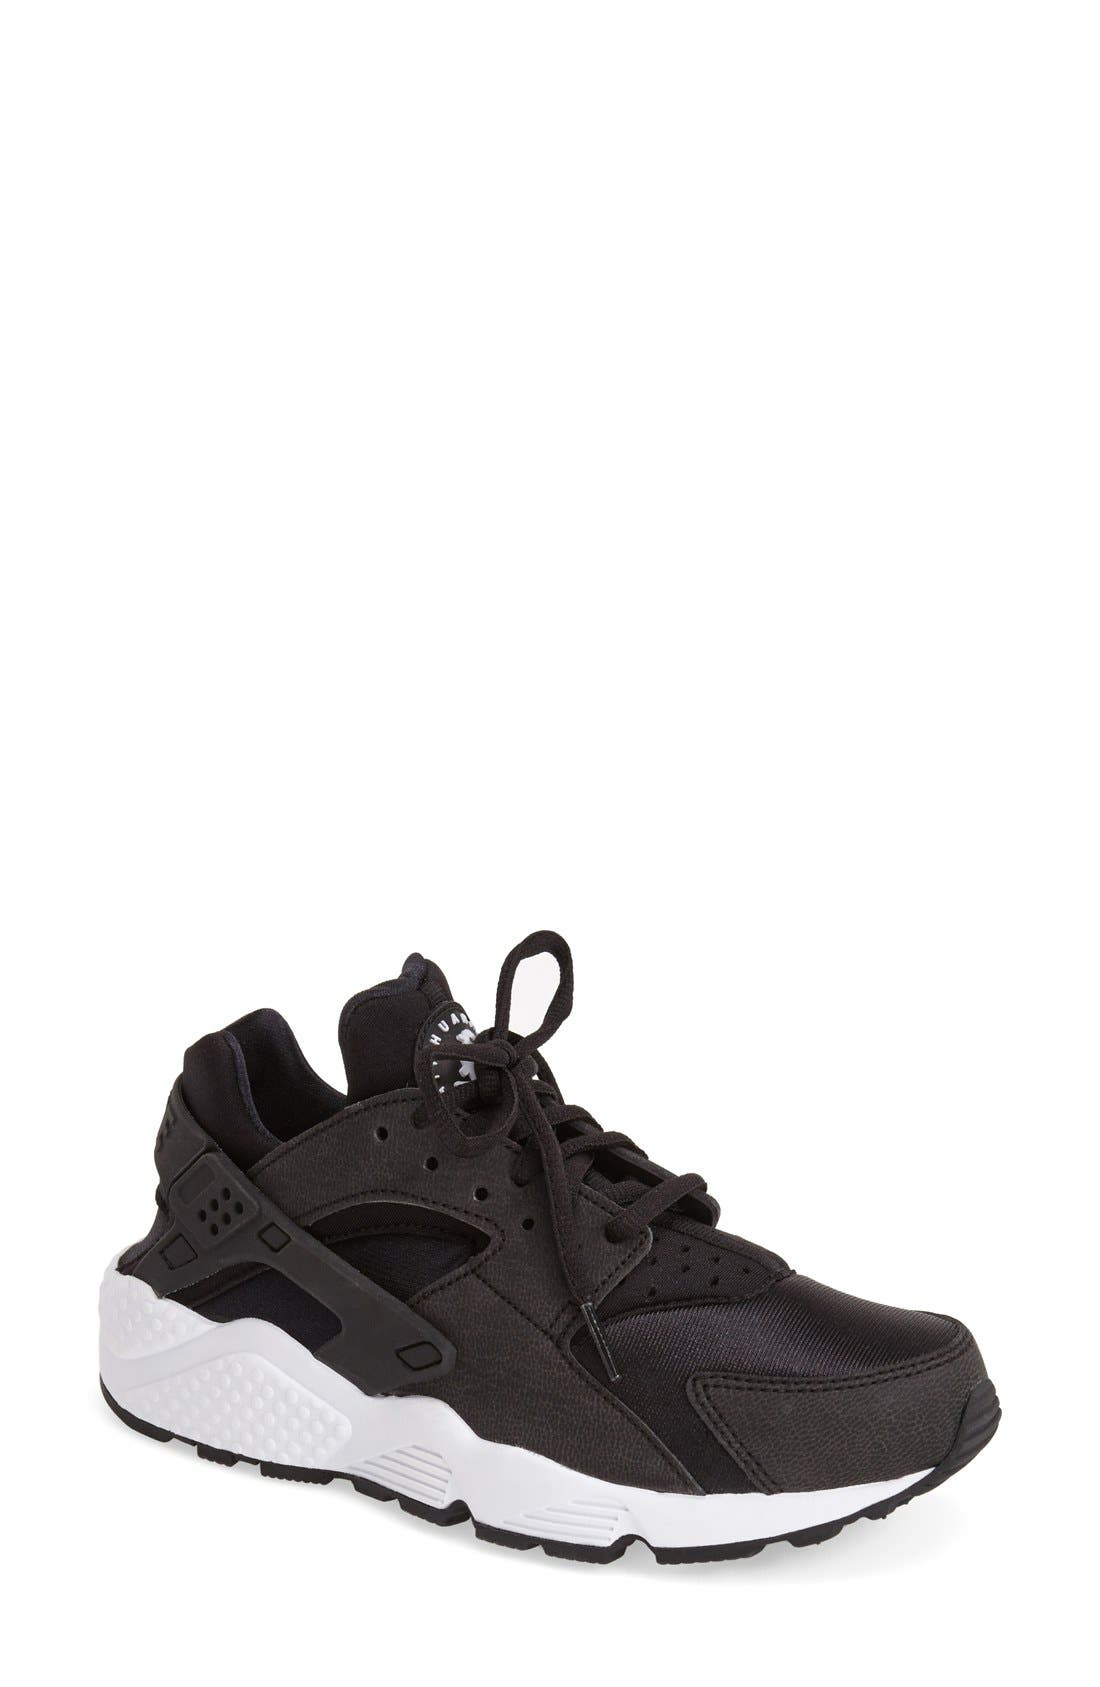 'Air Huarache' Sneaker,                         Main,                         color, Black/ White